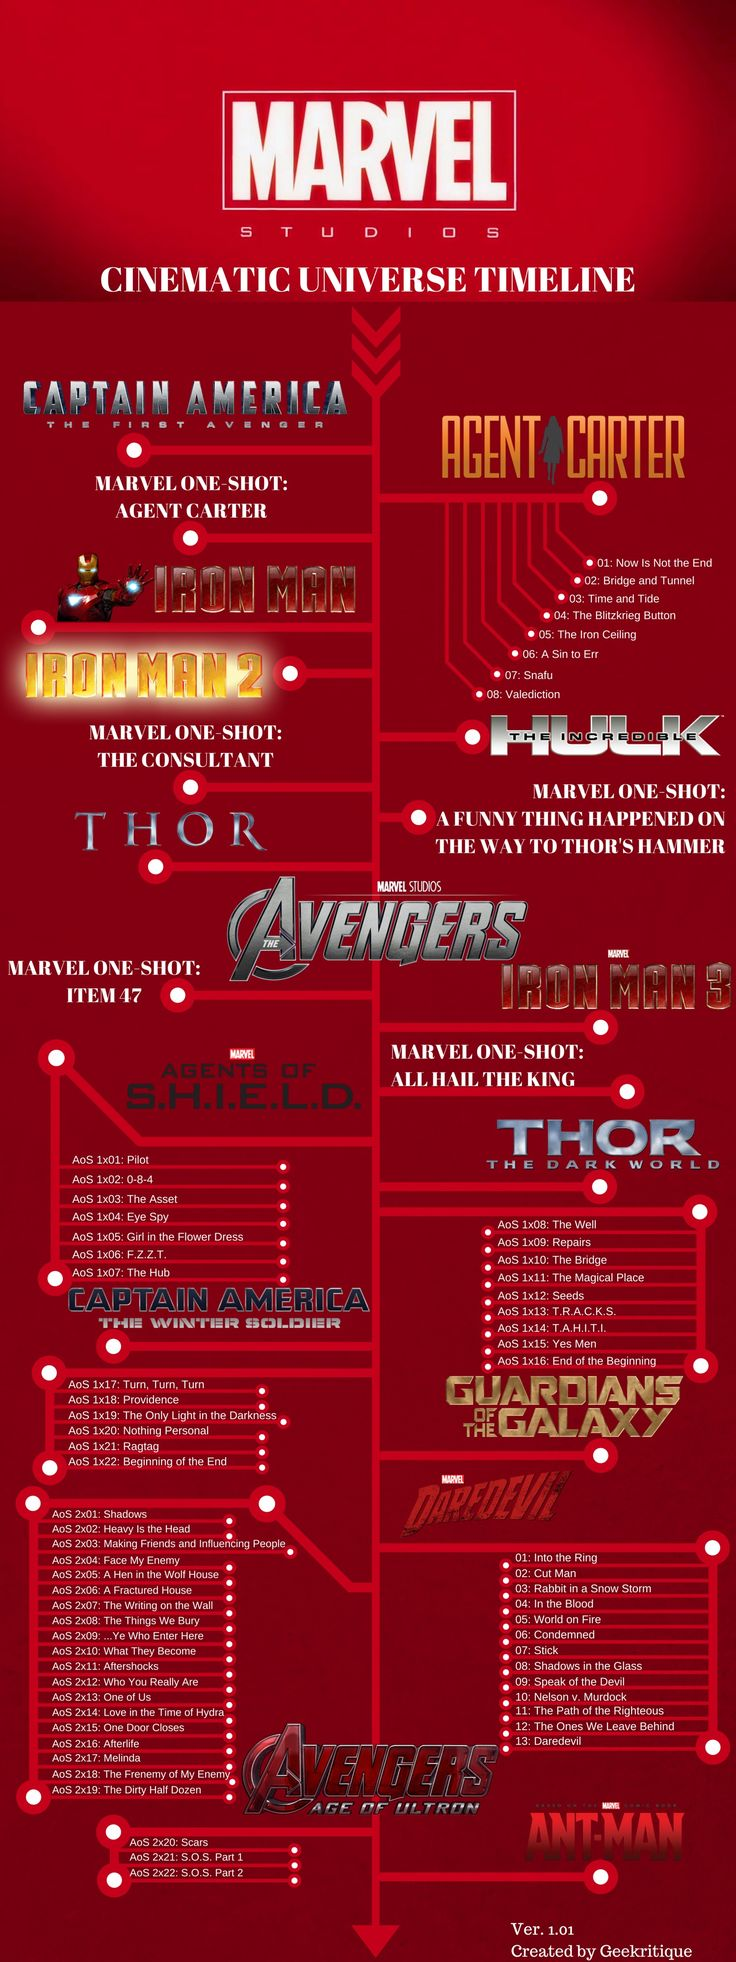 The Marvel Cinematic Universe Chronological Timeline. More useful information for my binge watching.